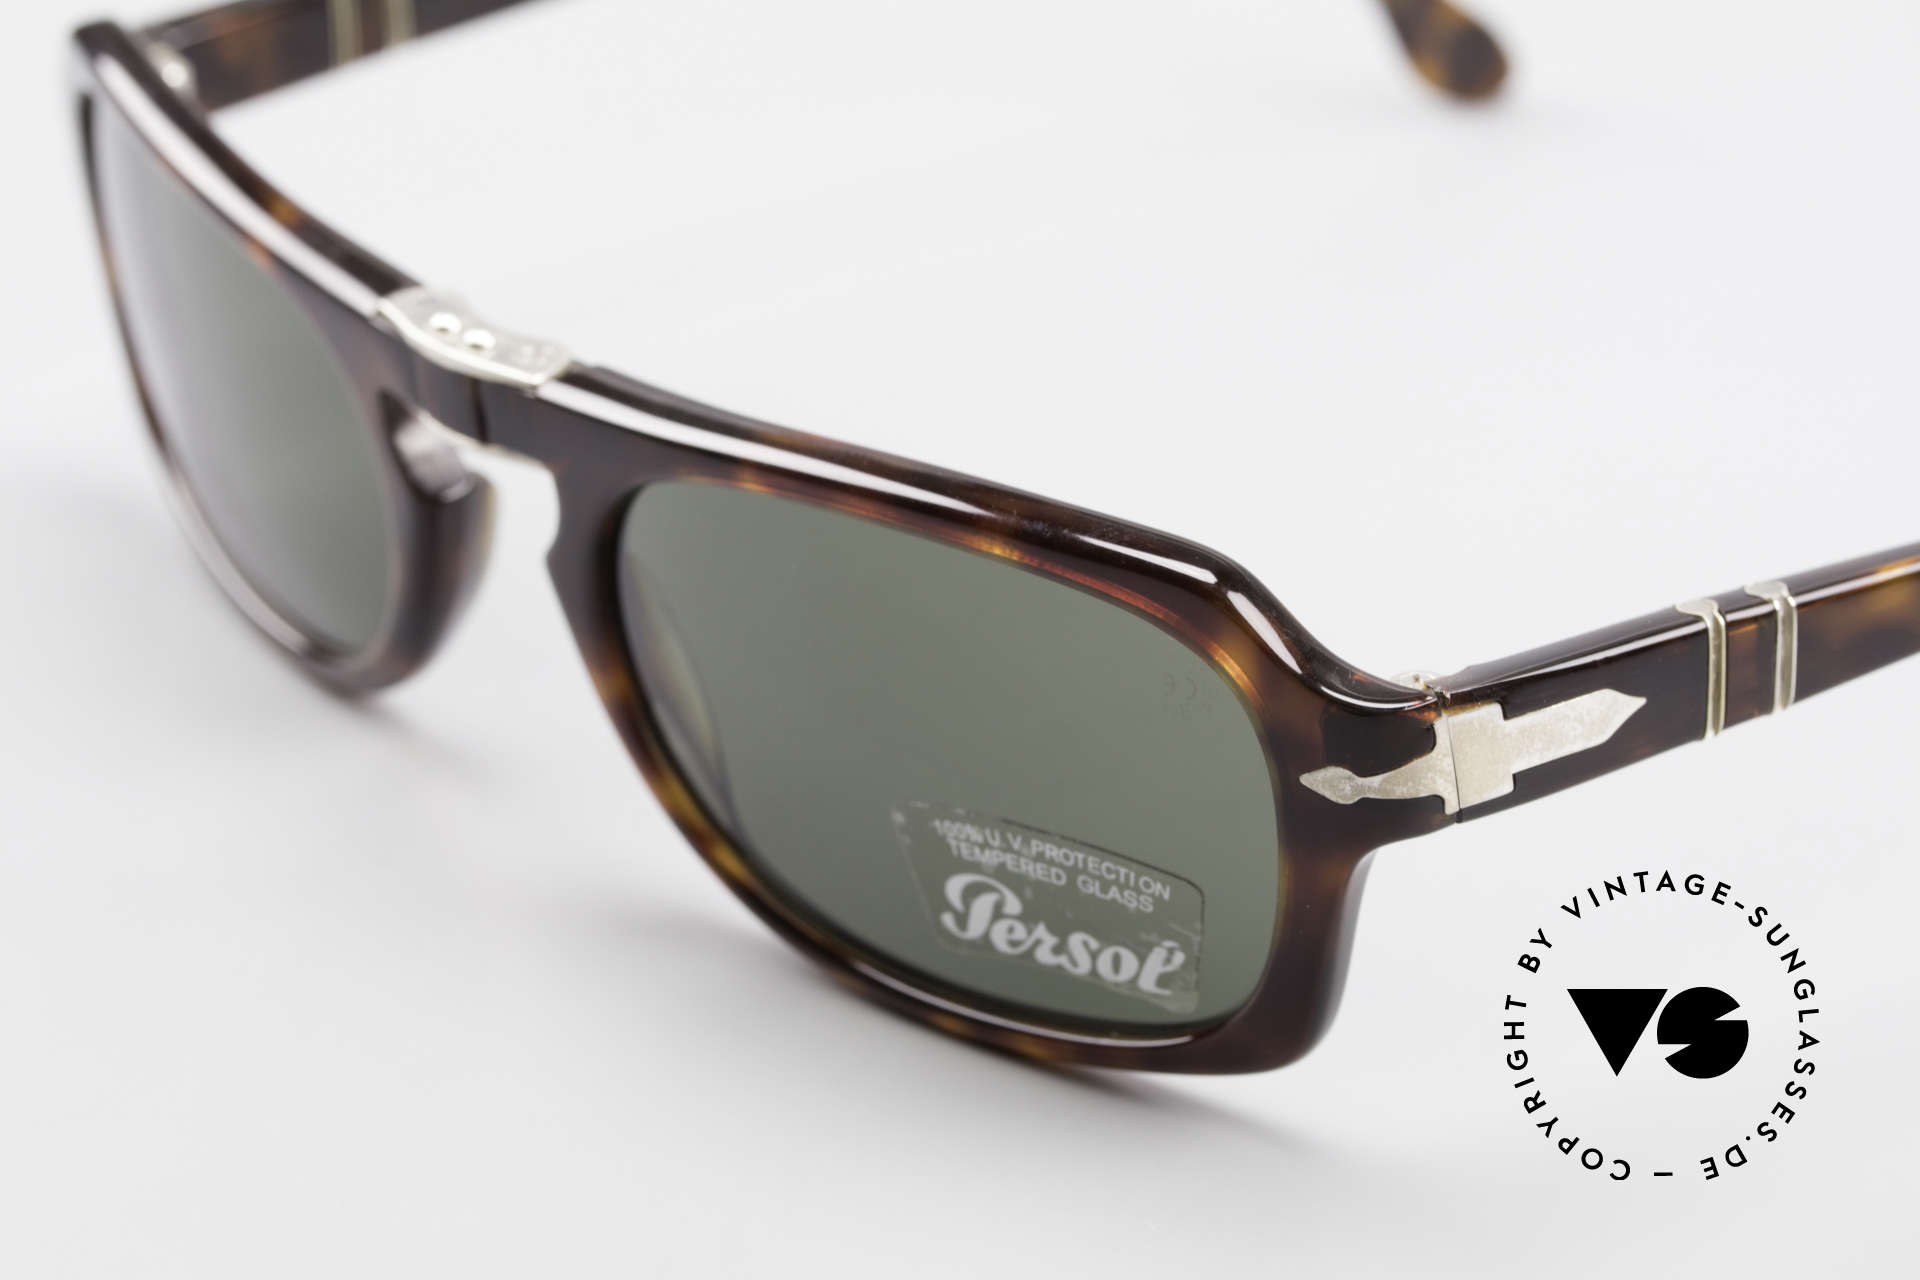 Persol 2621 Folding Foldable Sunglasses For Men, well, this re-issue is nicely made & in unworn condition, Made for Men